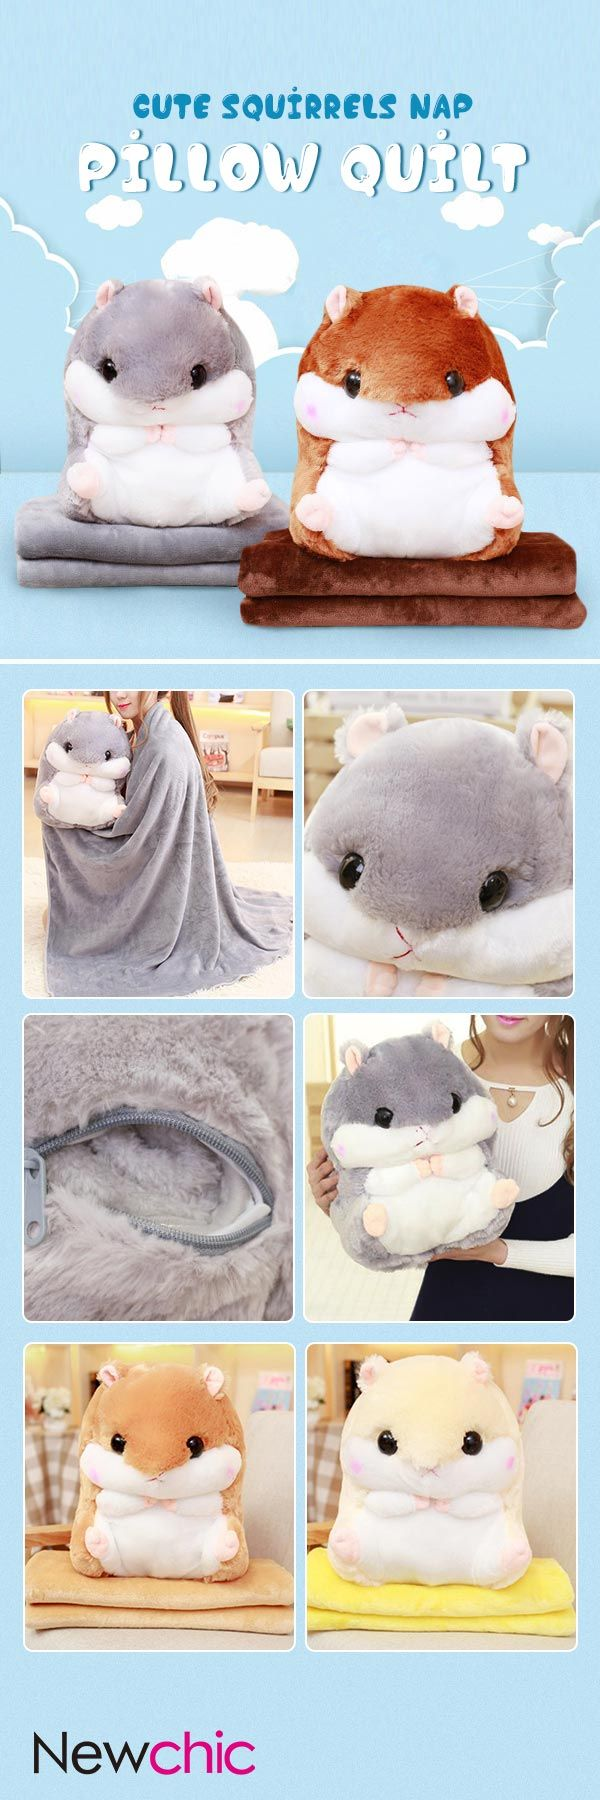 $21.19 Cute Squirrels Nap Pillow Quilt Cushion Car Air Conditioning Blanket Cushion Quilt Double Use